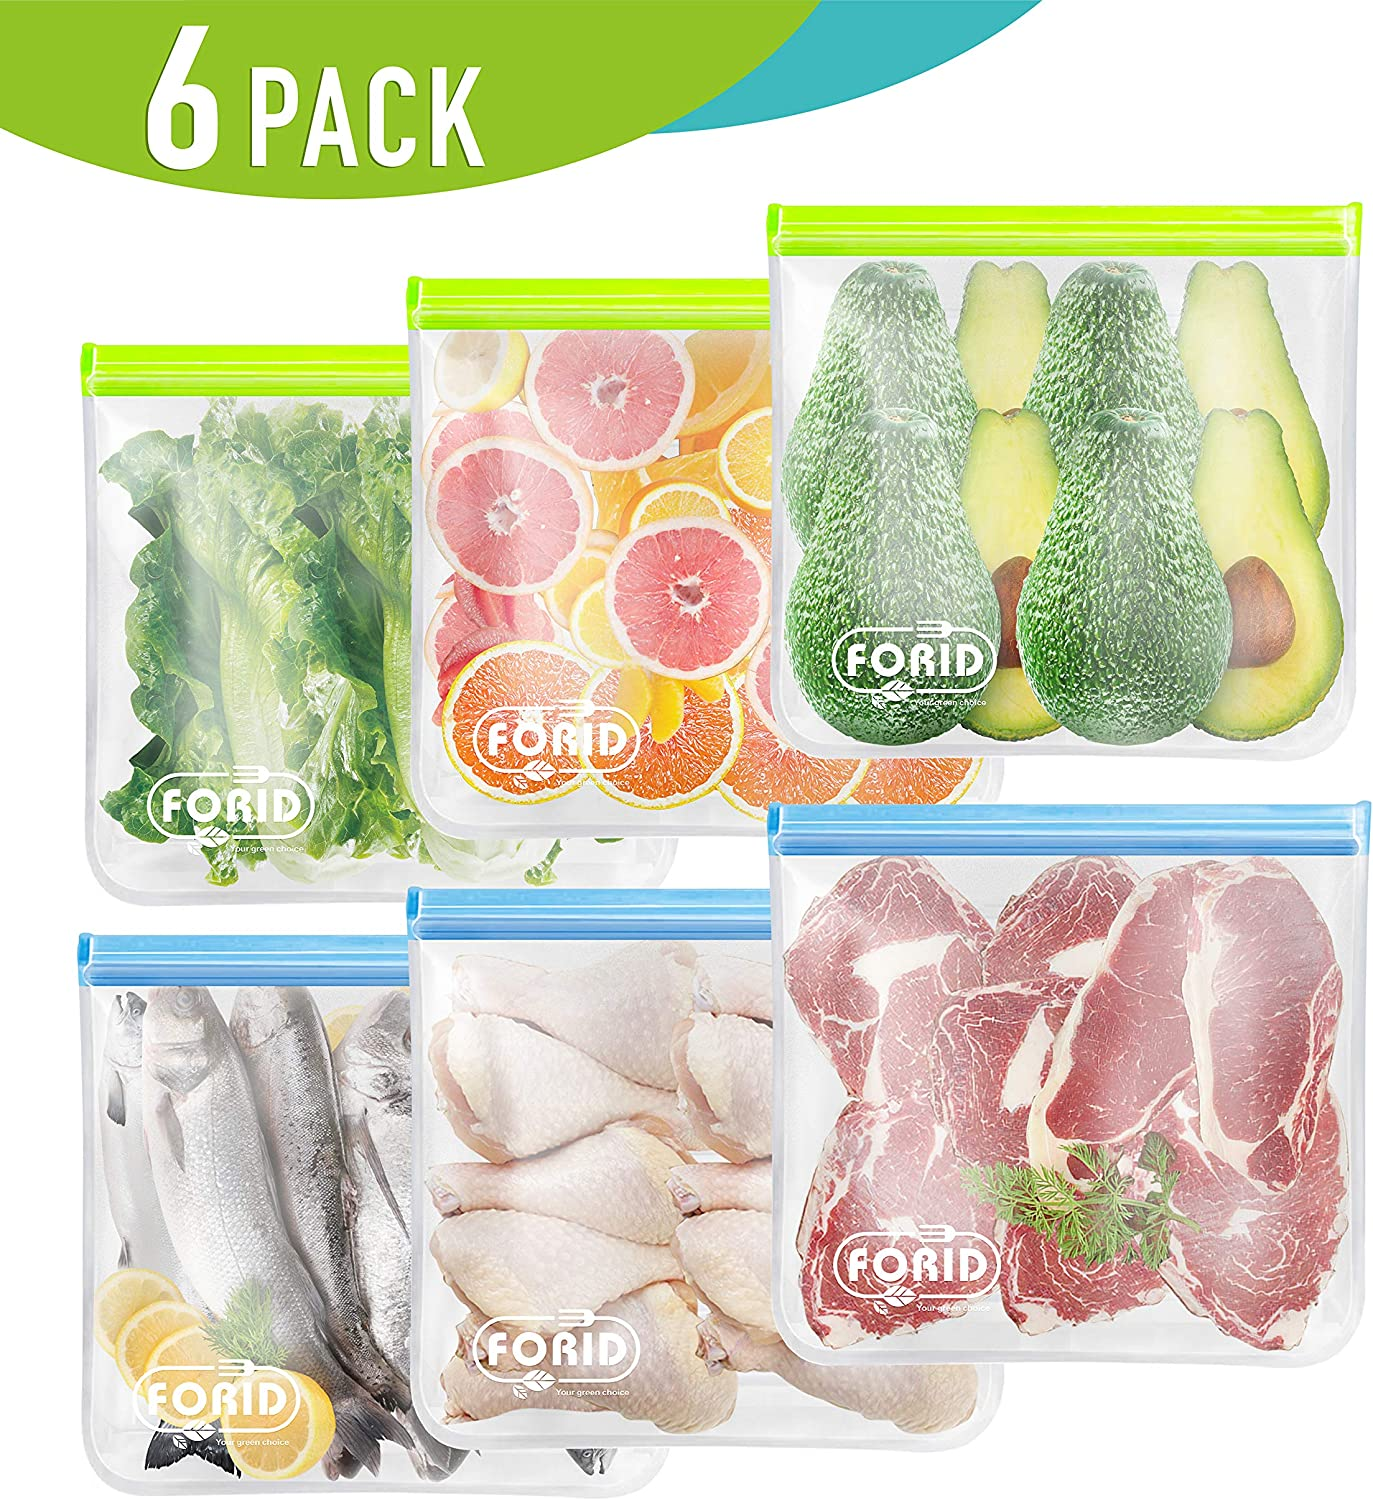 Reusable Gallon Freezer Bags - 6 Pack EXTRA THICK 1 Gallon Ziplock Bags LEAKPROOF Gallon Storage Bags for Marinate Food & Fruit Cereal Sandwich Snack Meal Prep Travel Items Home Organization Storage